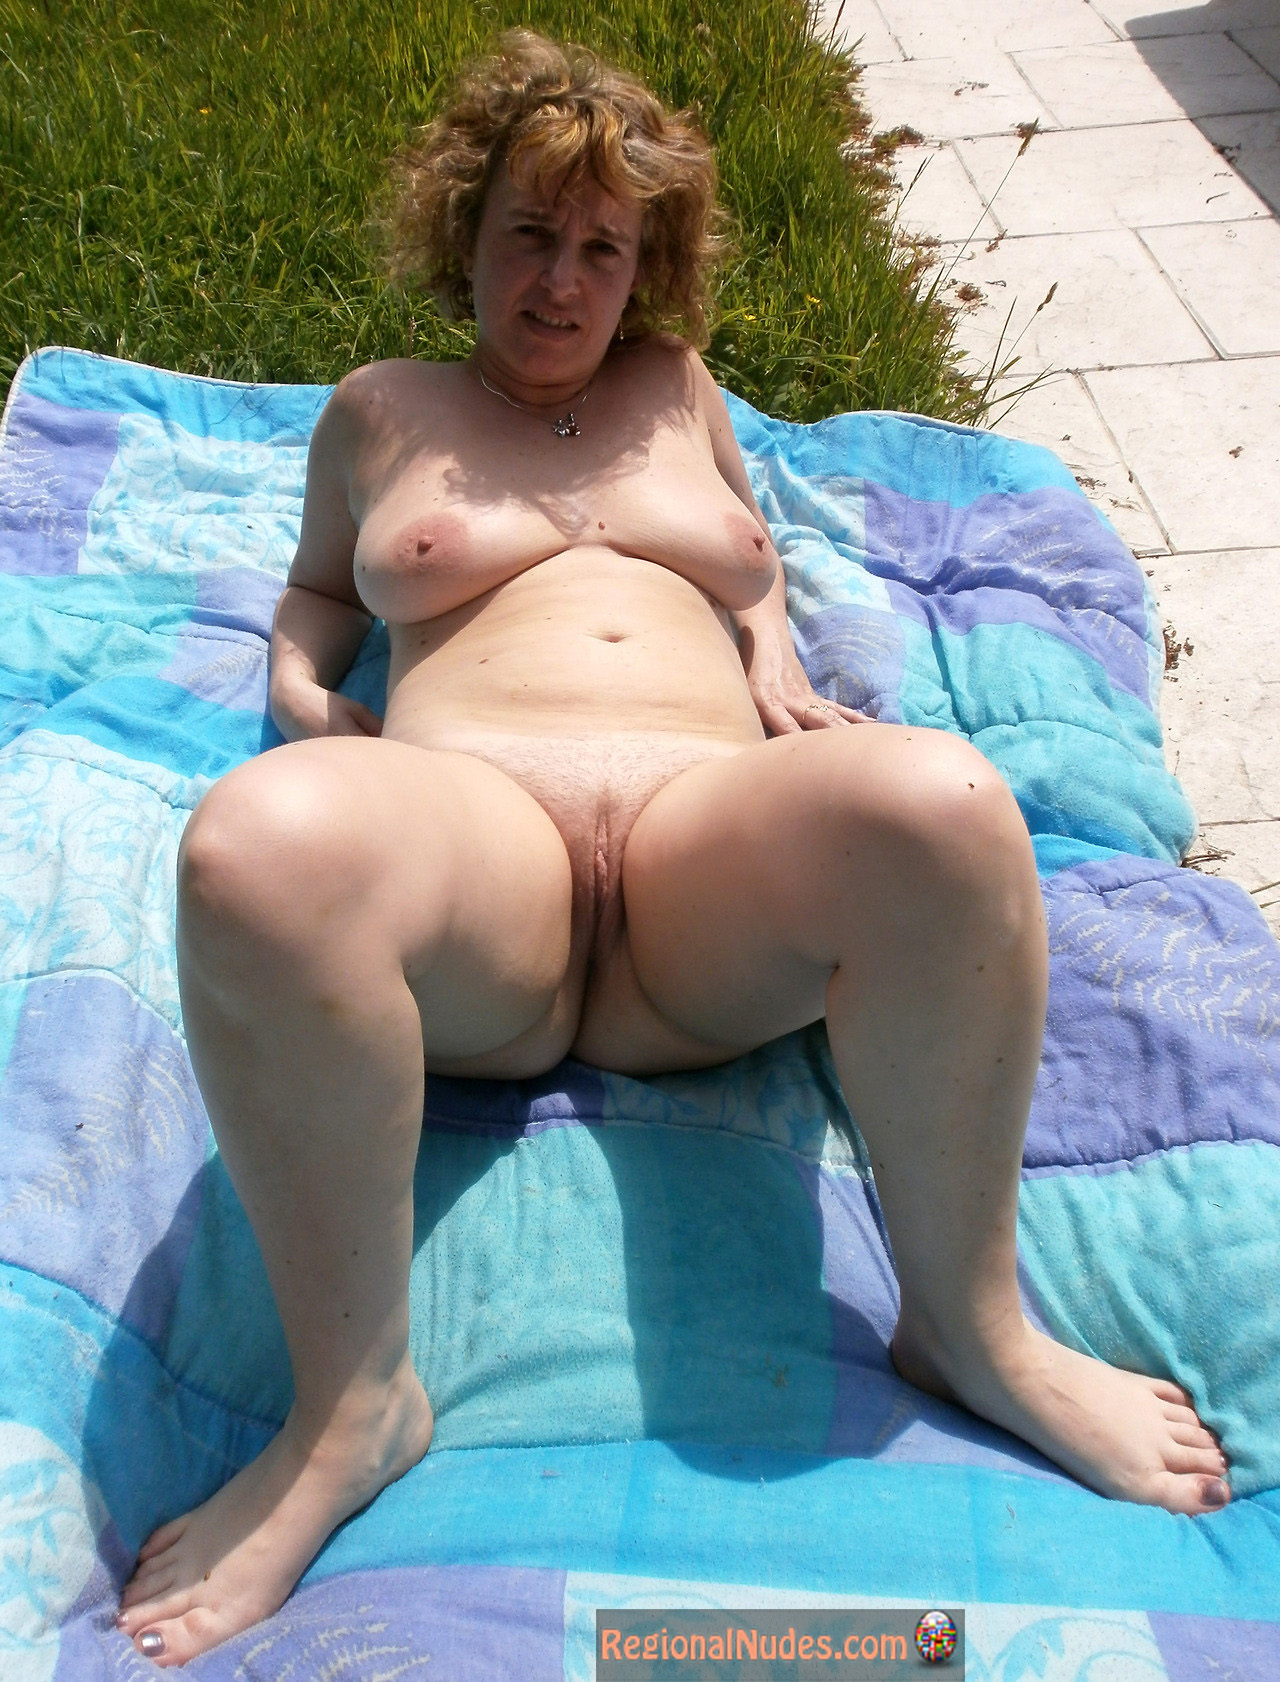 Blonde French Mature Nudist Woman  Regional Nude Women -3012